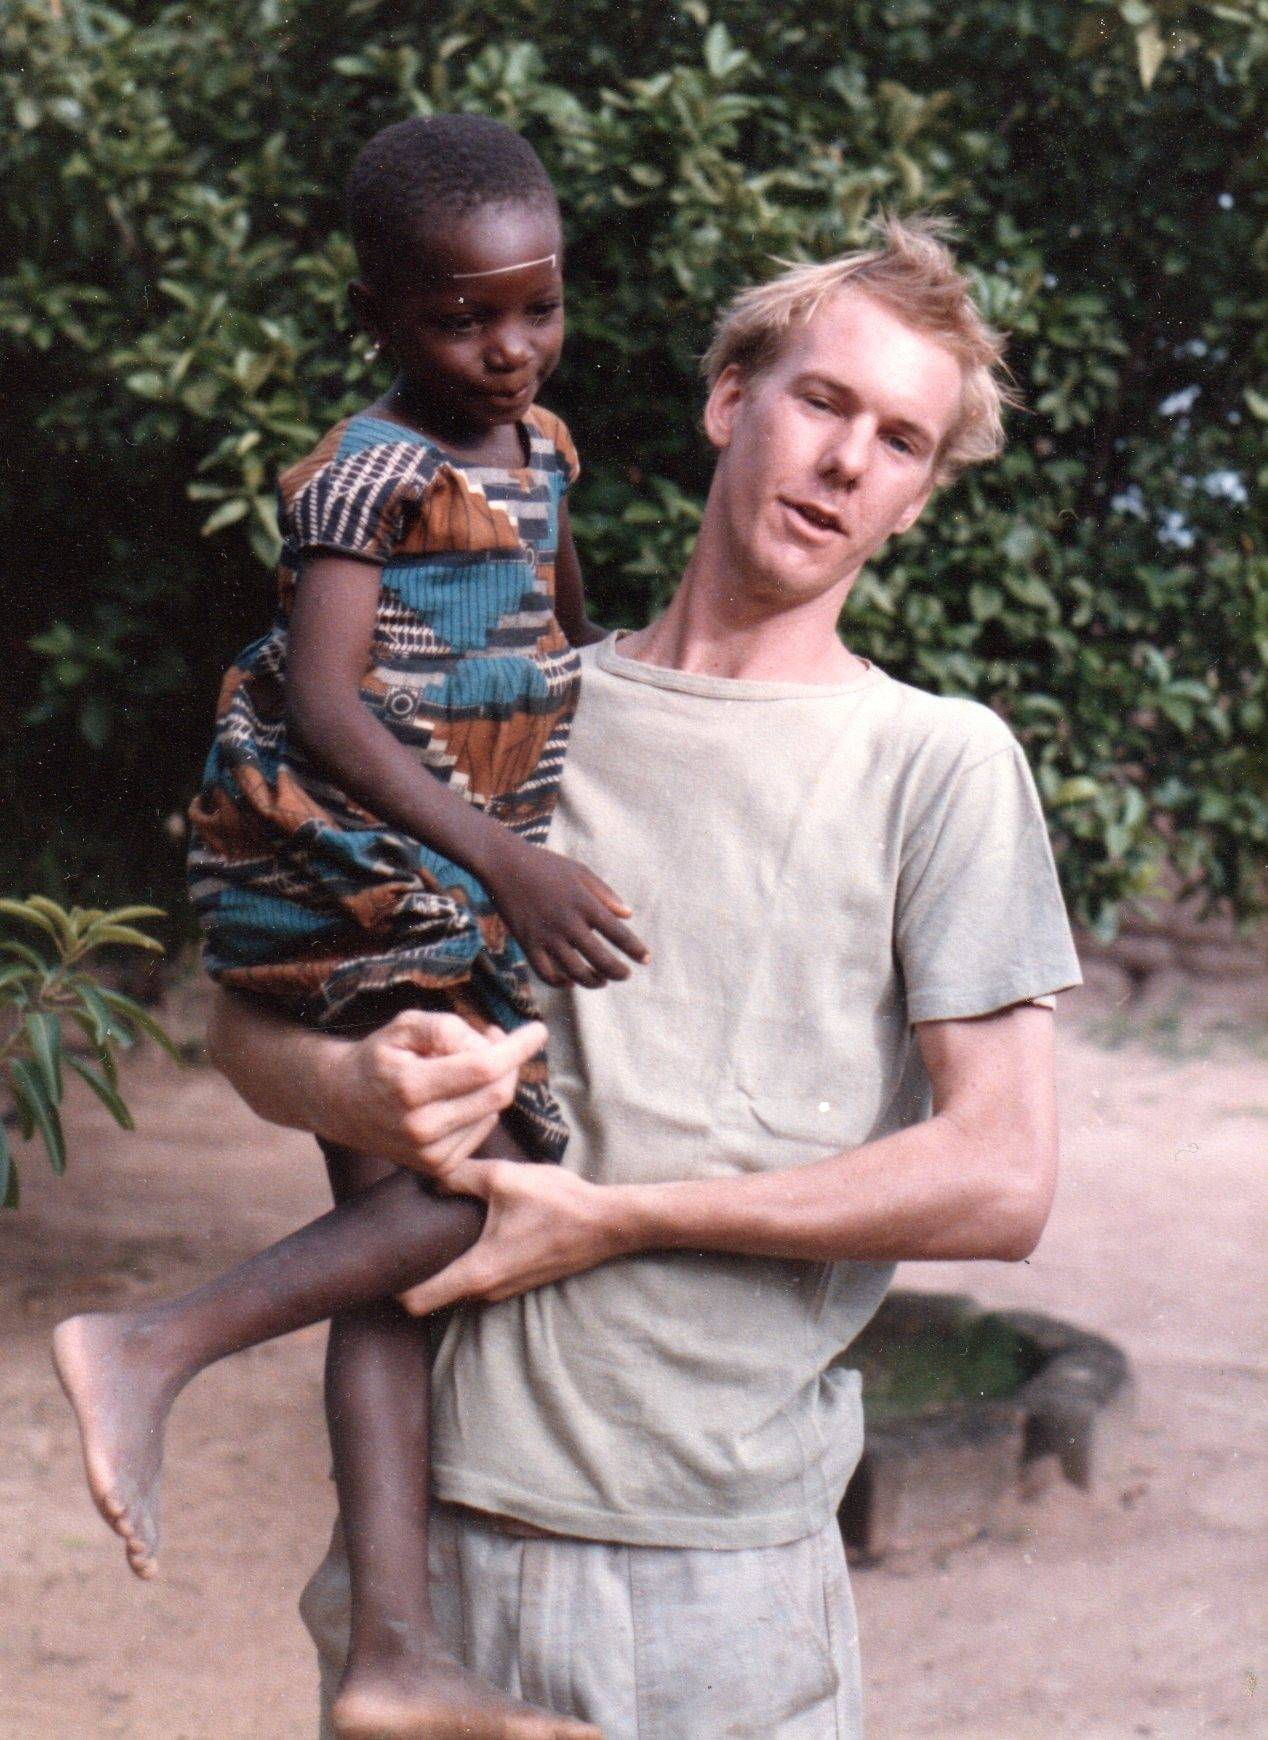 Rich Johnson, with one of his host family's kids in Western Africa.